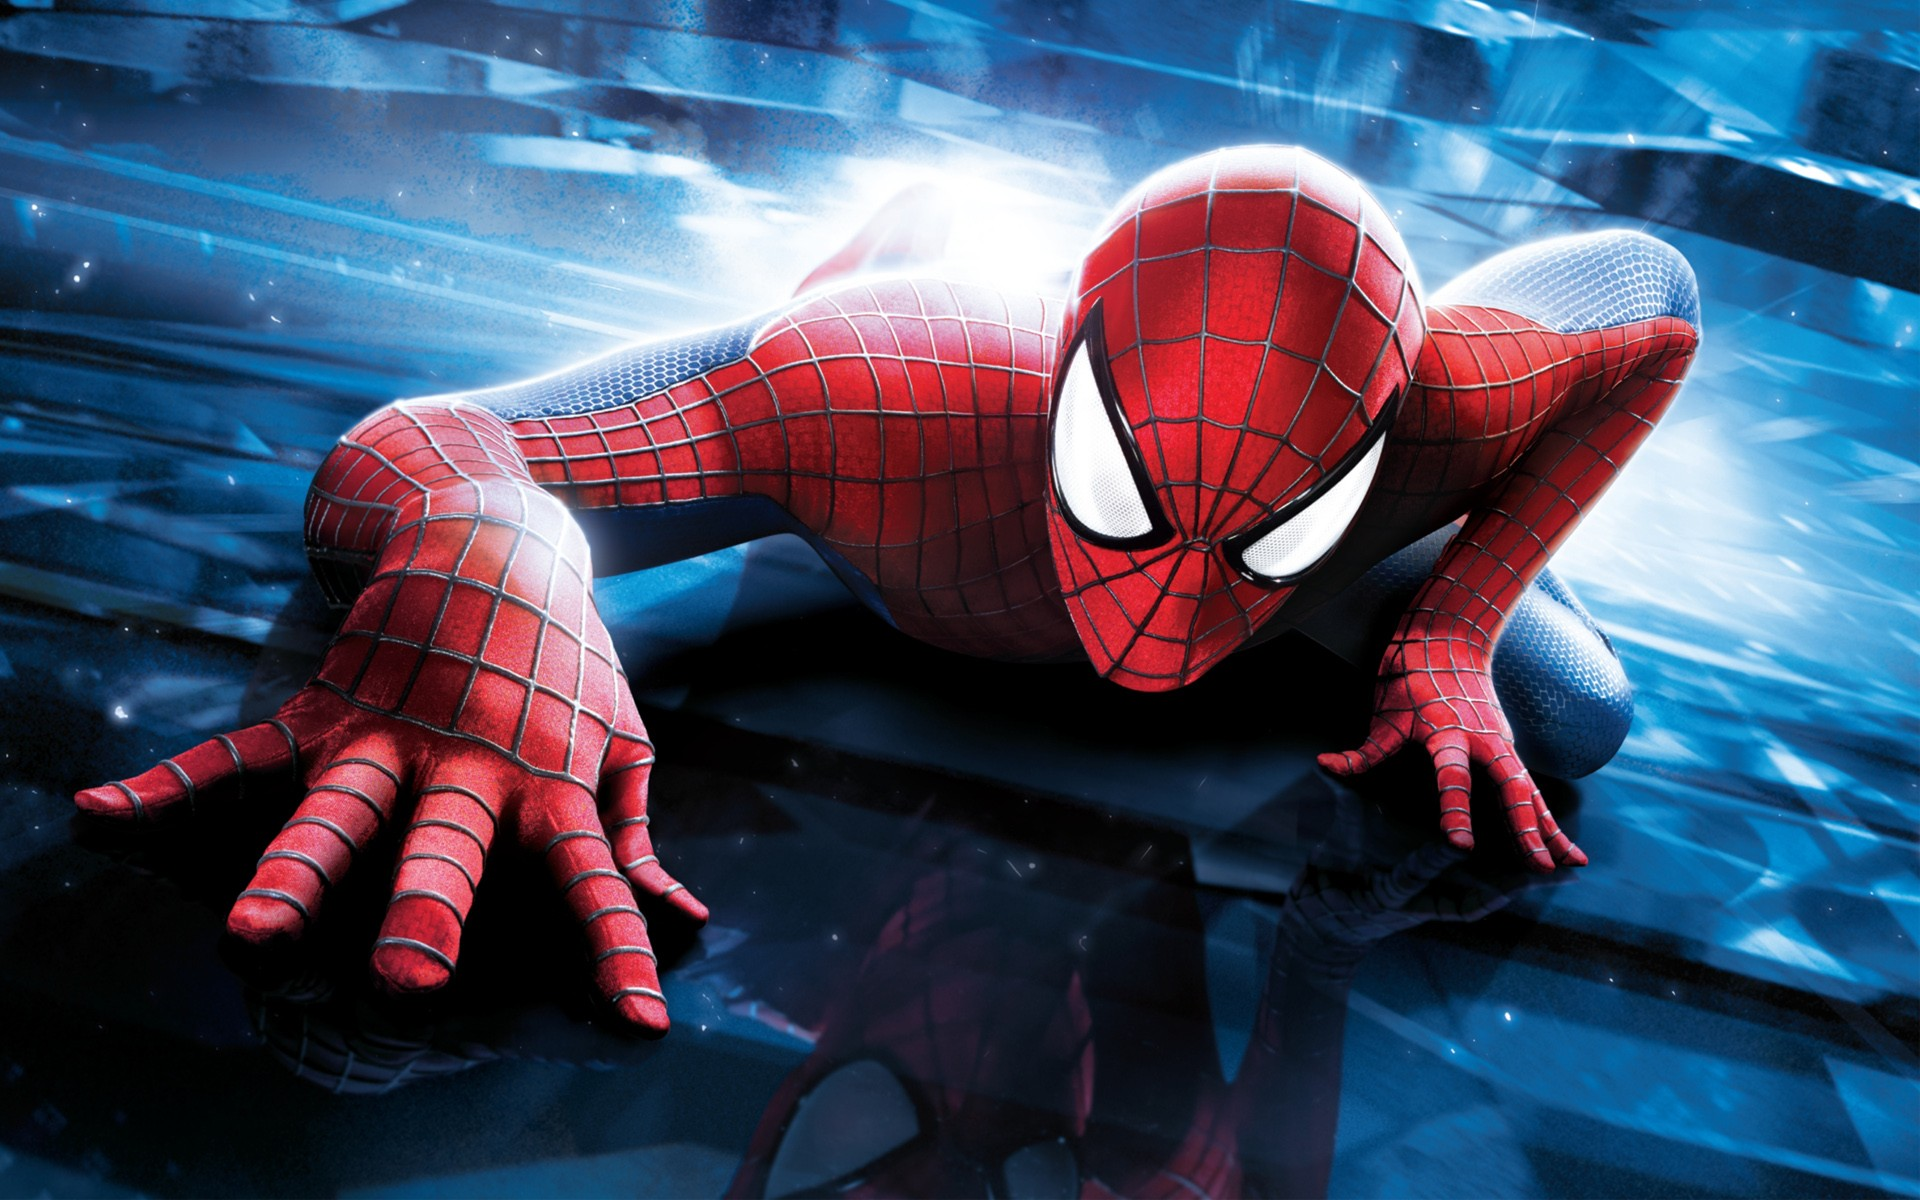 2048x1152 Spiderman 2048x1152 Resolution HD 4k Wallpapers Images